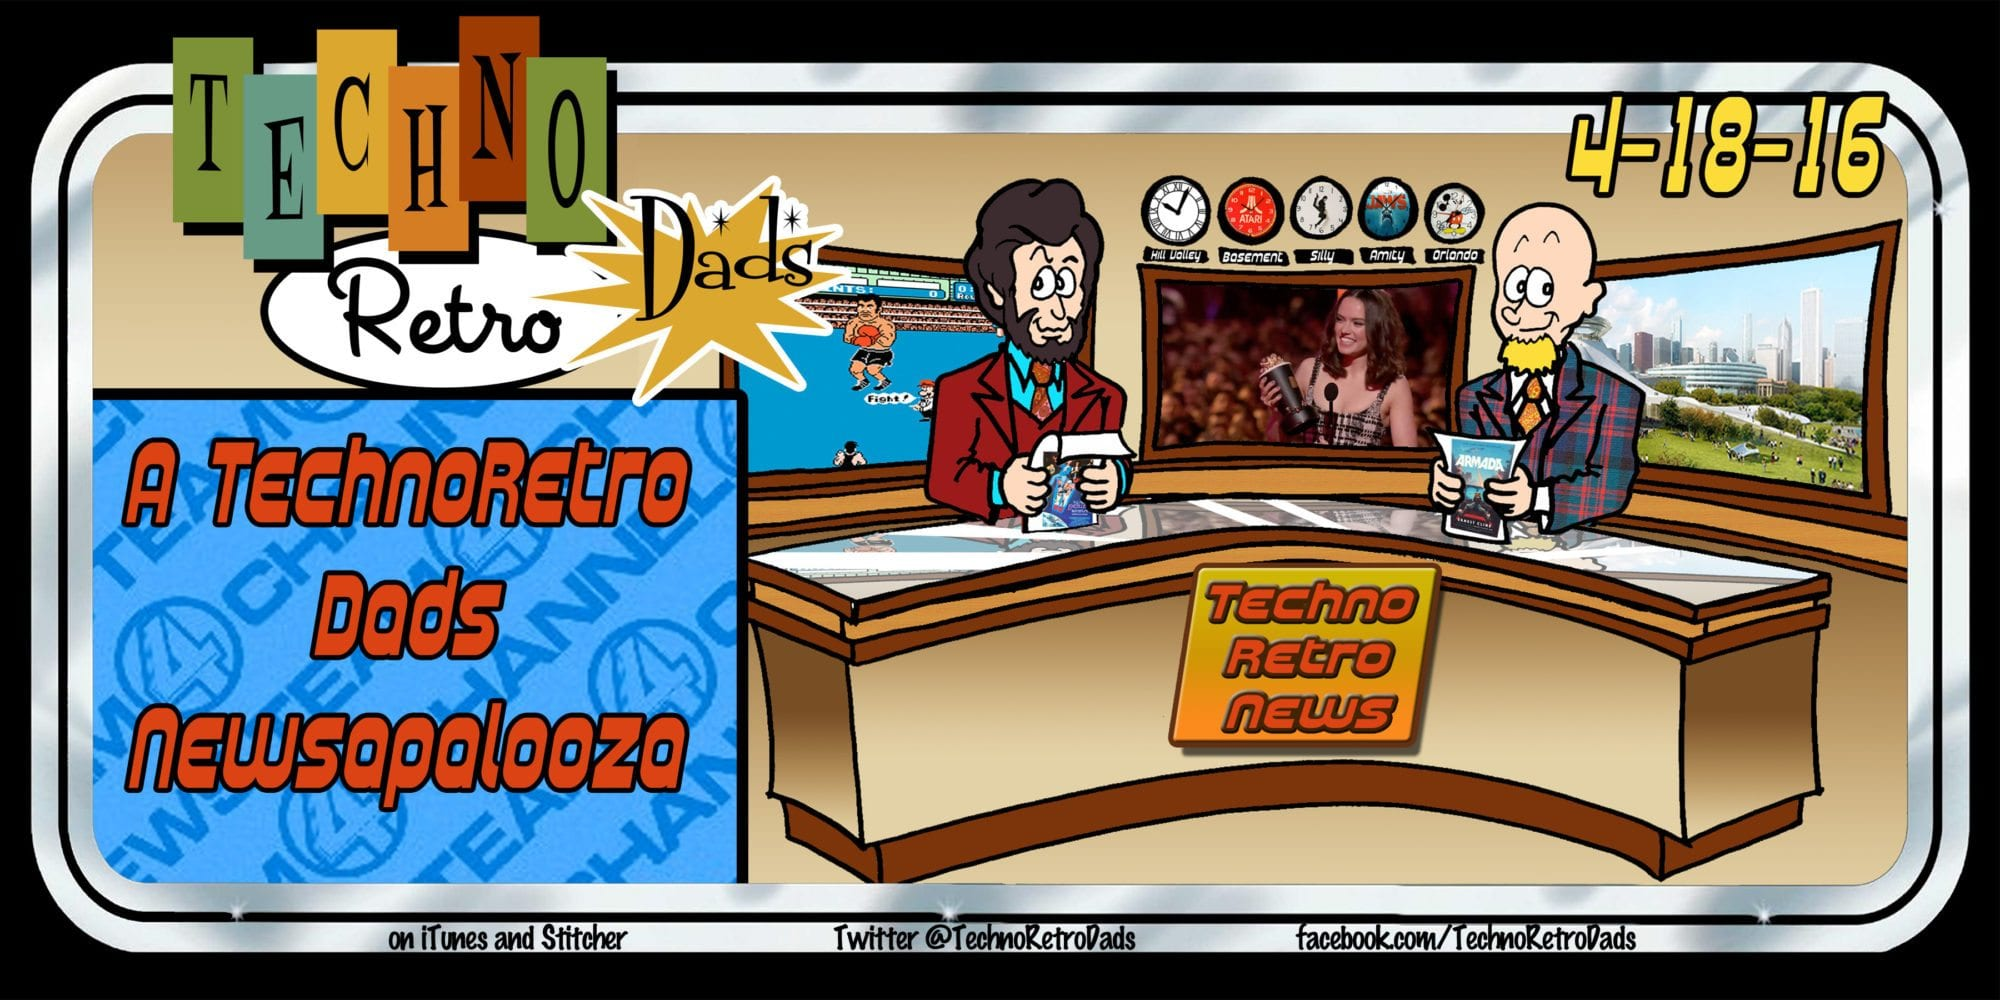 TechnoRetro Dads: Newsapalooza